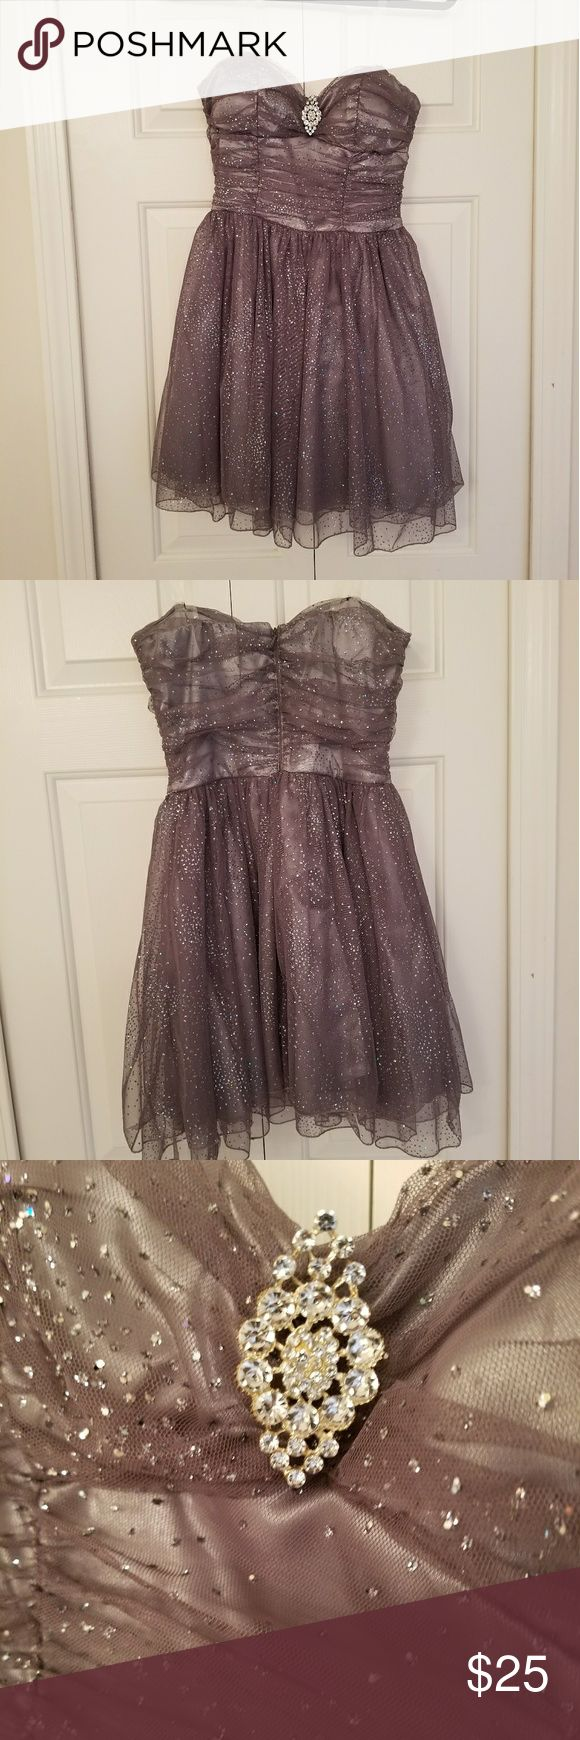 Silver sparkly dress This dress is in great condition. It was worn once. I added clear straps so it holds up nicely. The dress shimmers and complimets the body. The skirt is multi-layers with mesh material. There are no tears. Speechless Dresses Prom